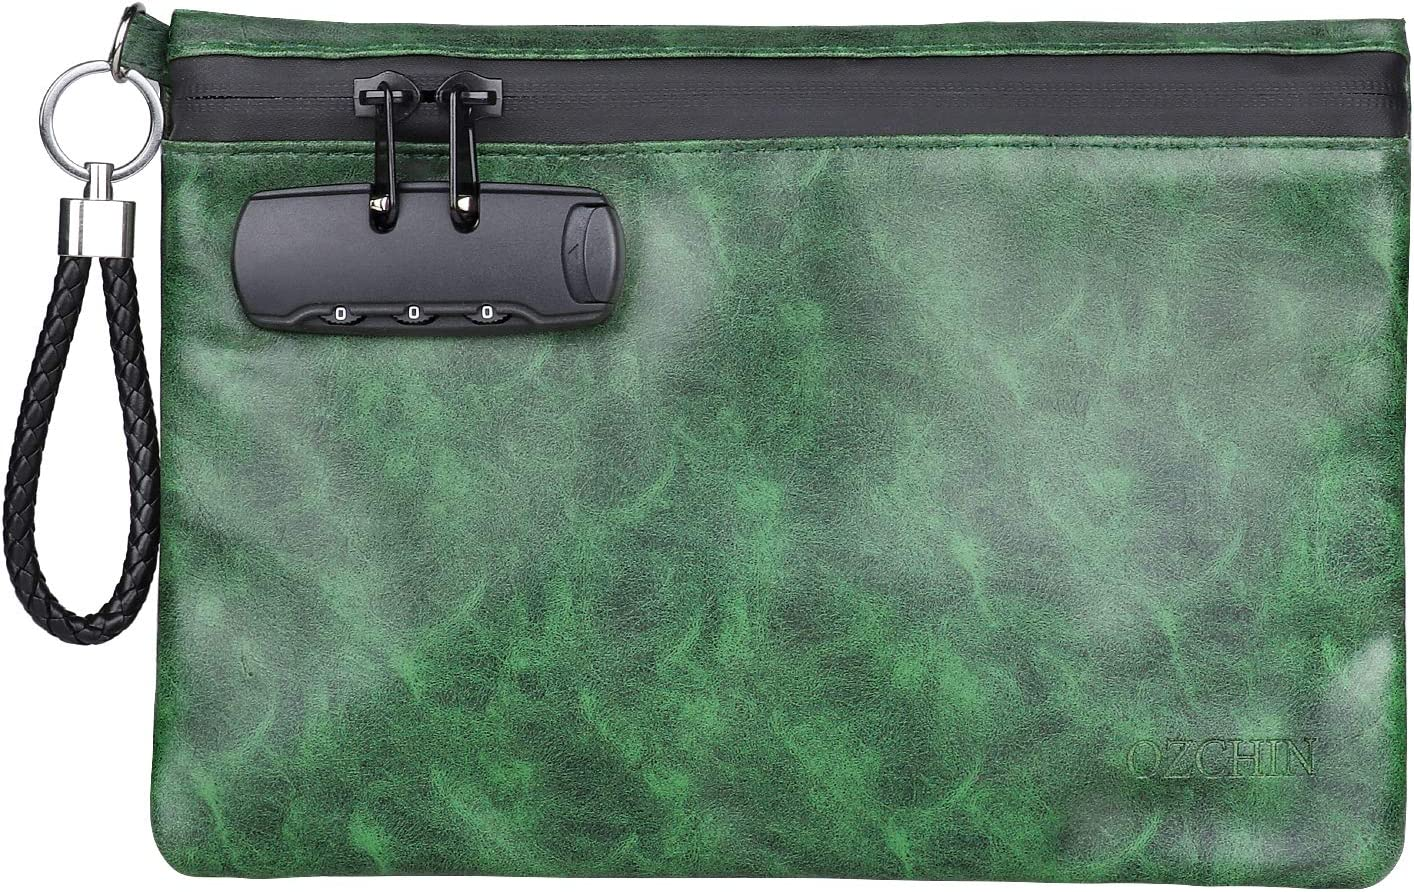 Odor Proof Pouch with Combination Lock Smell Proof Bags with Combination Lock PU Leather Smell Proof Stash Container 10 x 7 inches (Green)